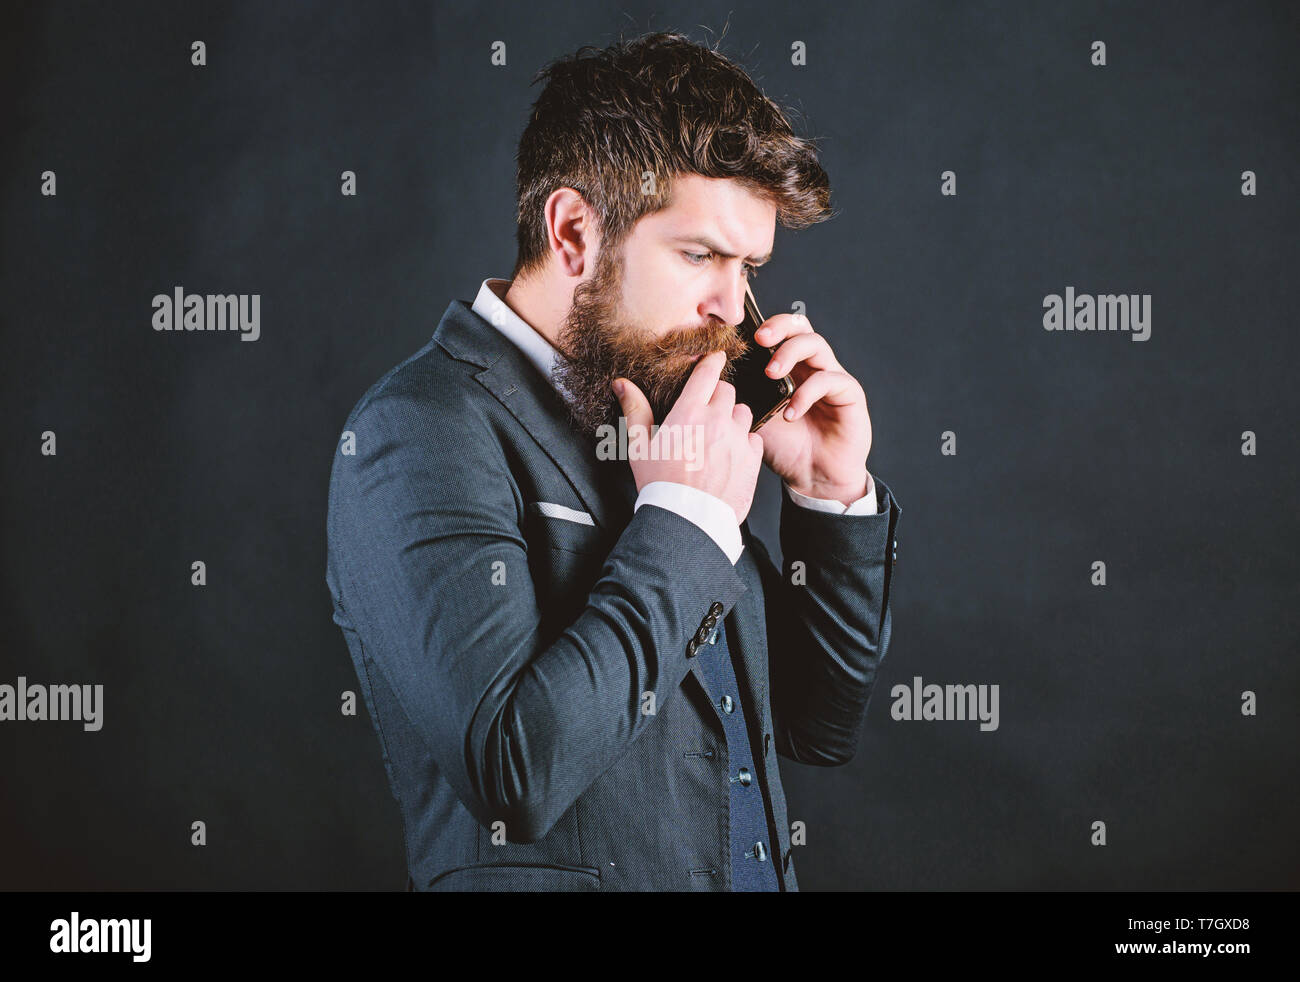 Mobile call concept. Mobile call conversation. Mobile negotiations. Businessman well groomed mature man hold smartphone. Guy call friend stand black background. Man formal suit call someone. - Stock Image